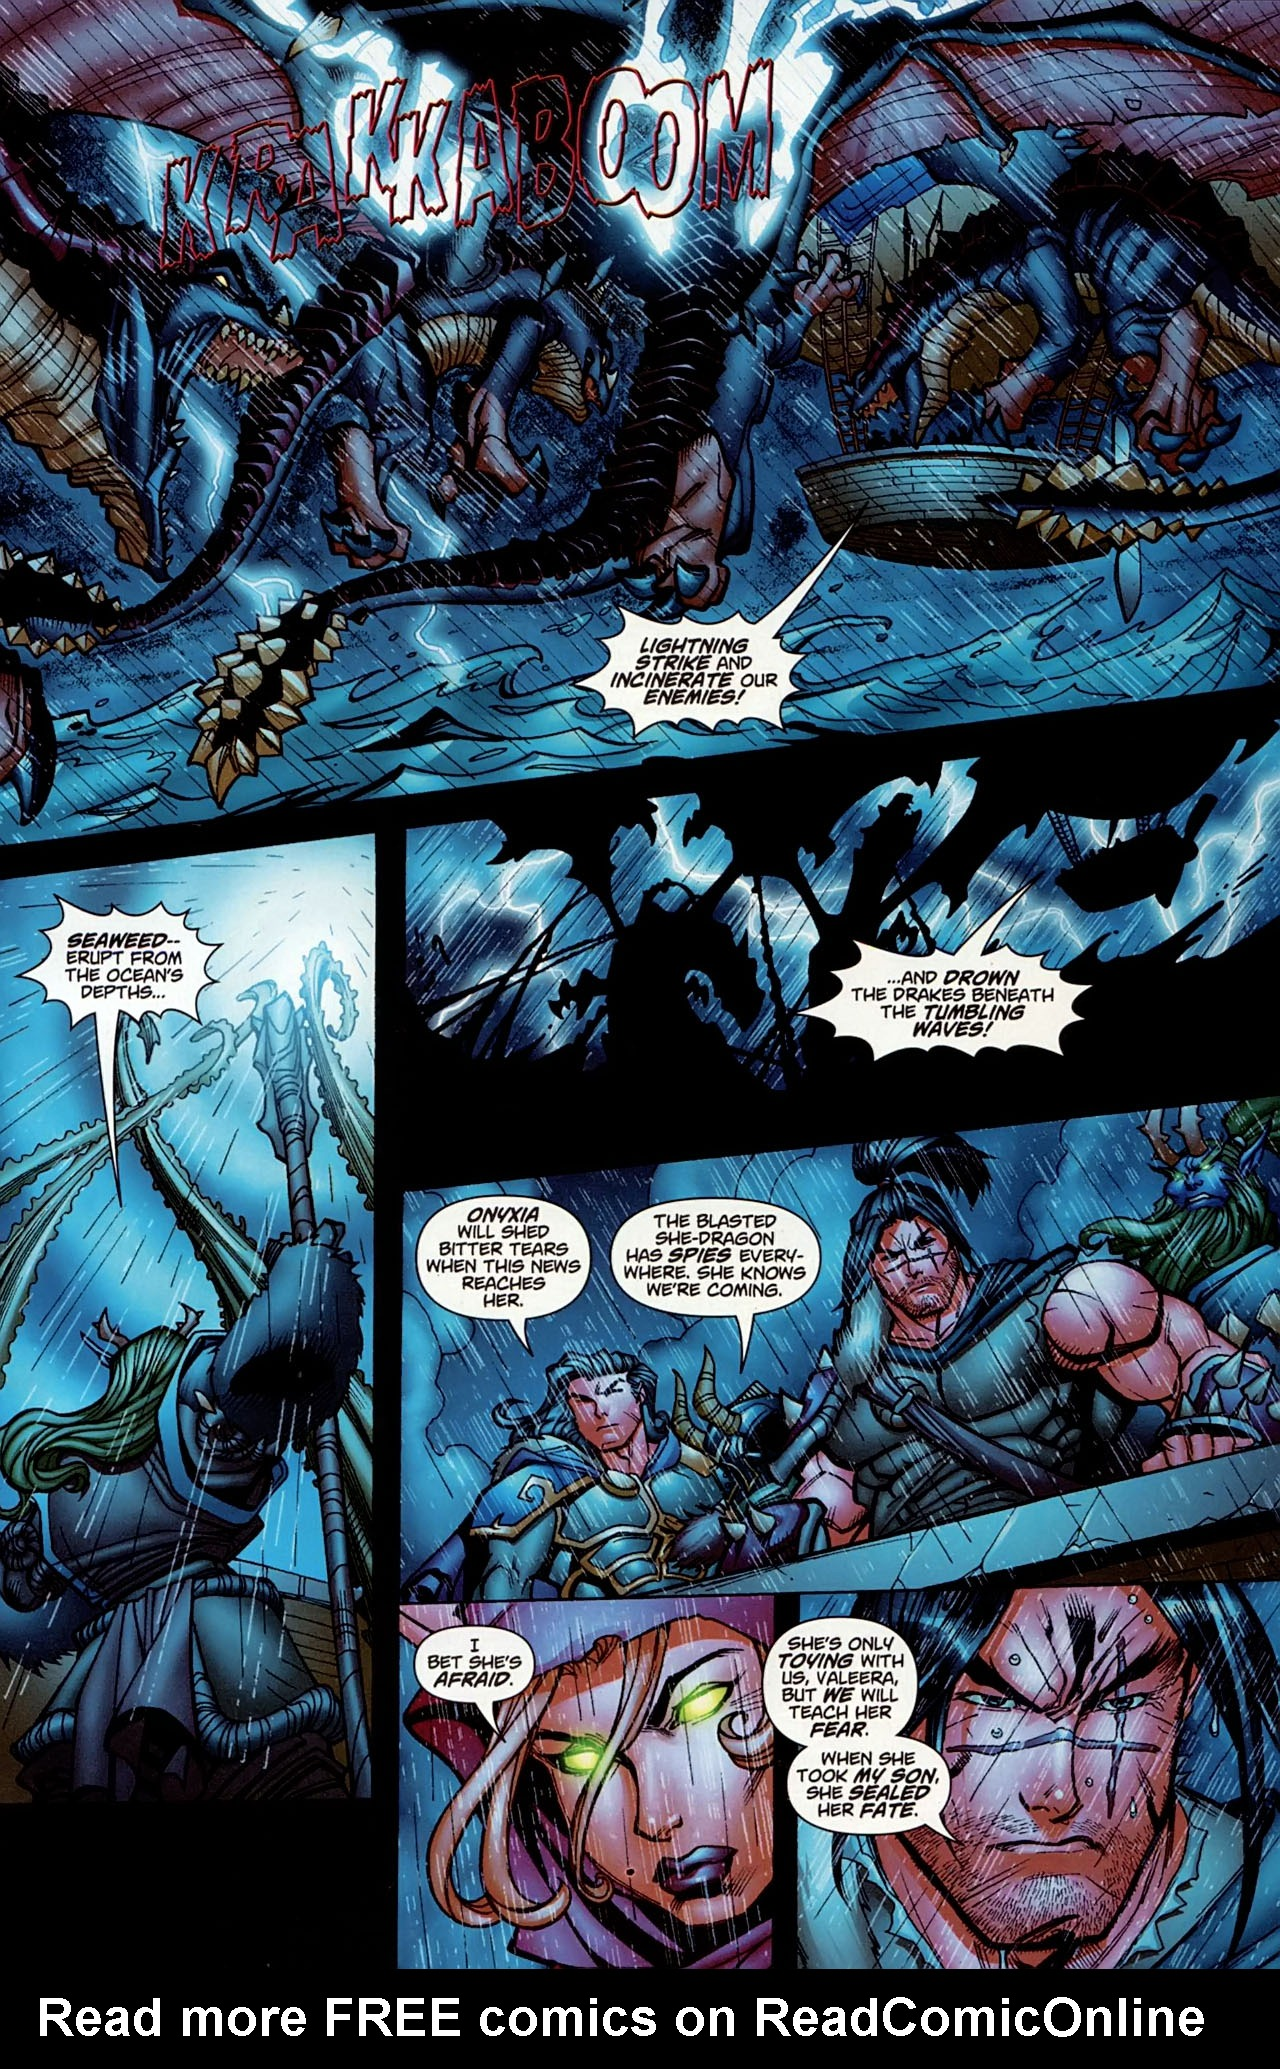 Read online World of Warcraft comic -  Issue #13 - 12